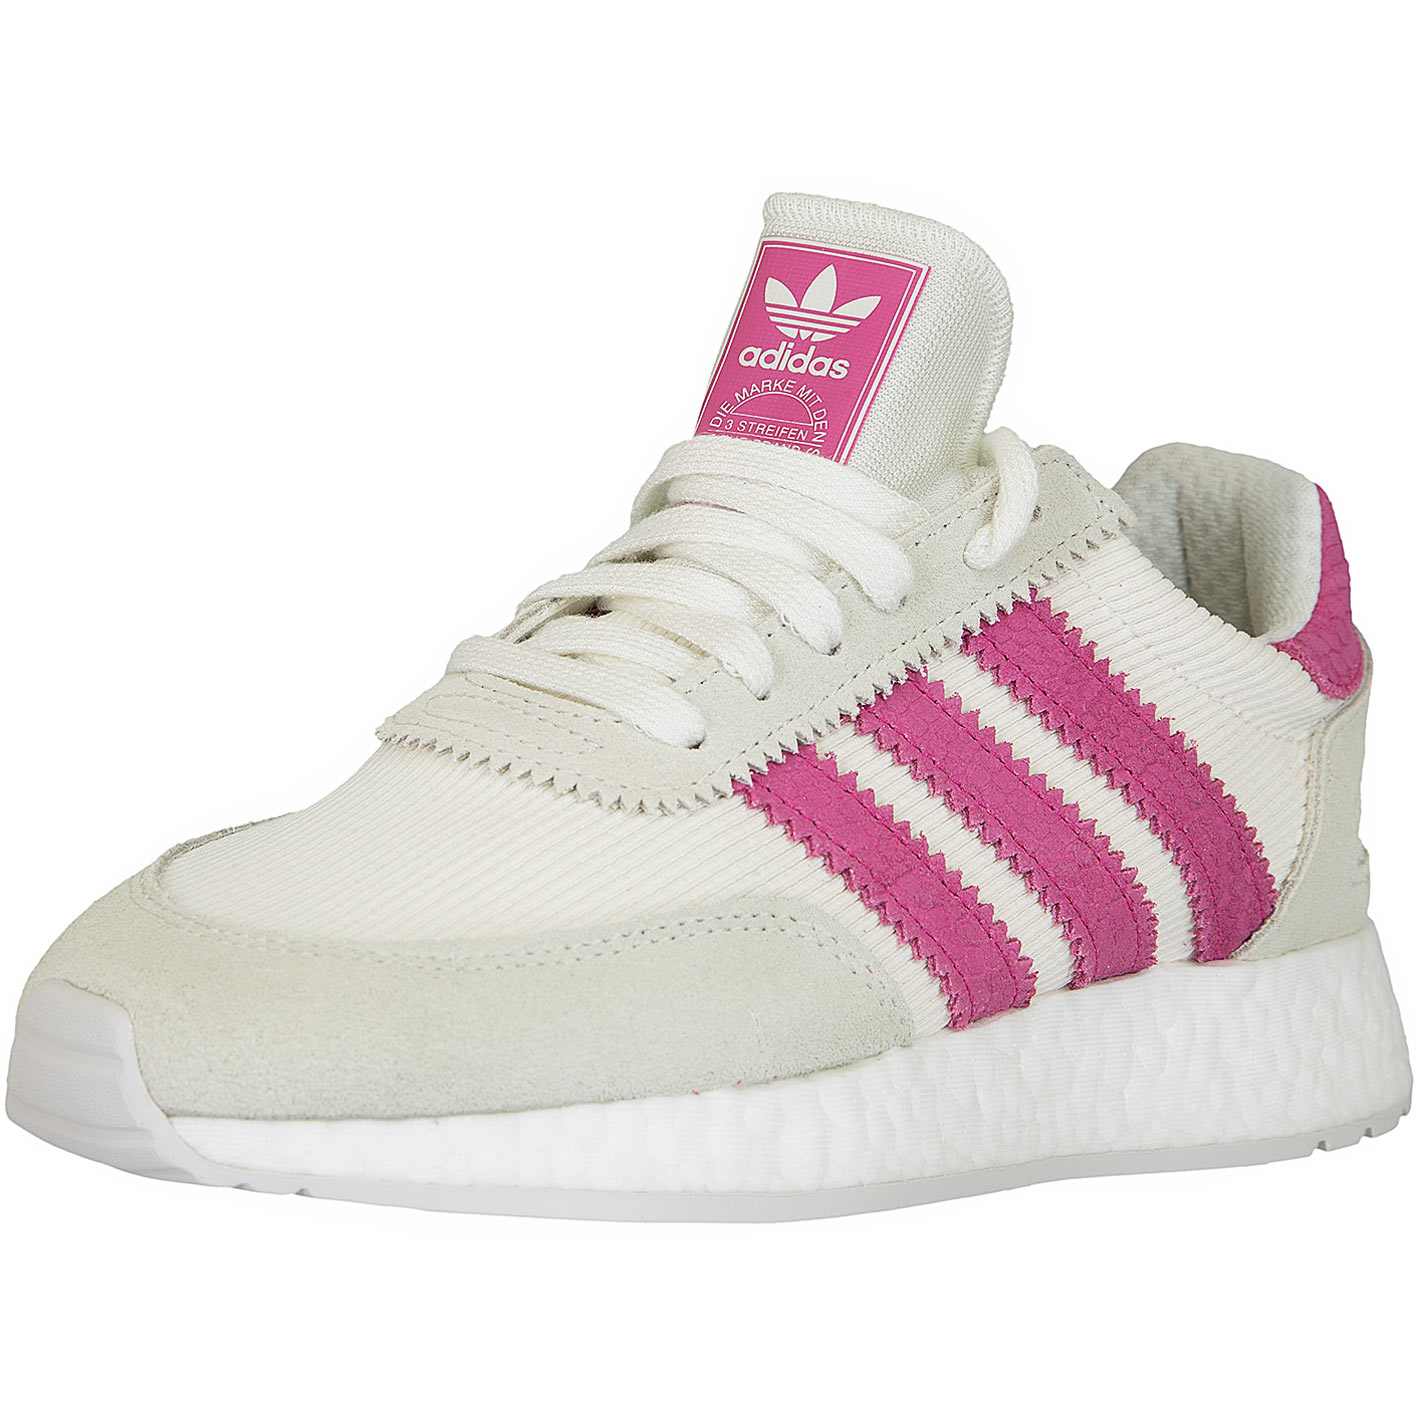 great look autumn shoes check out Adidas Originals Damen Sneaker I-5923 weiß/pink